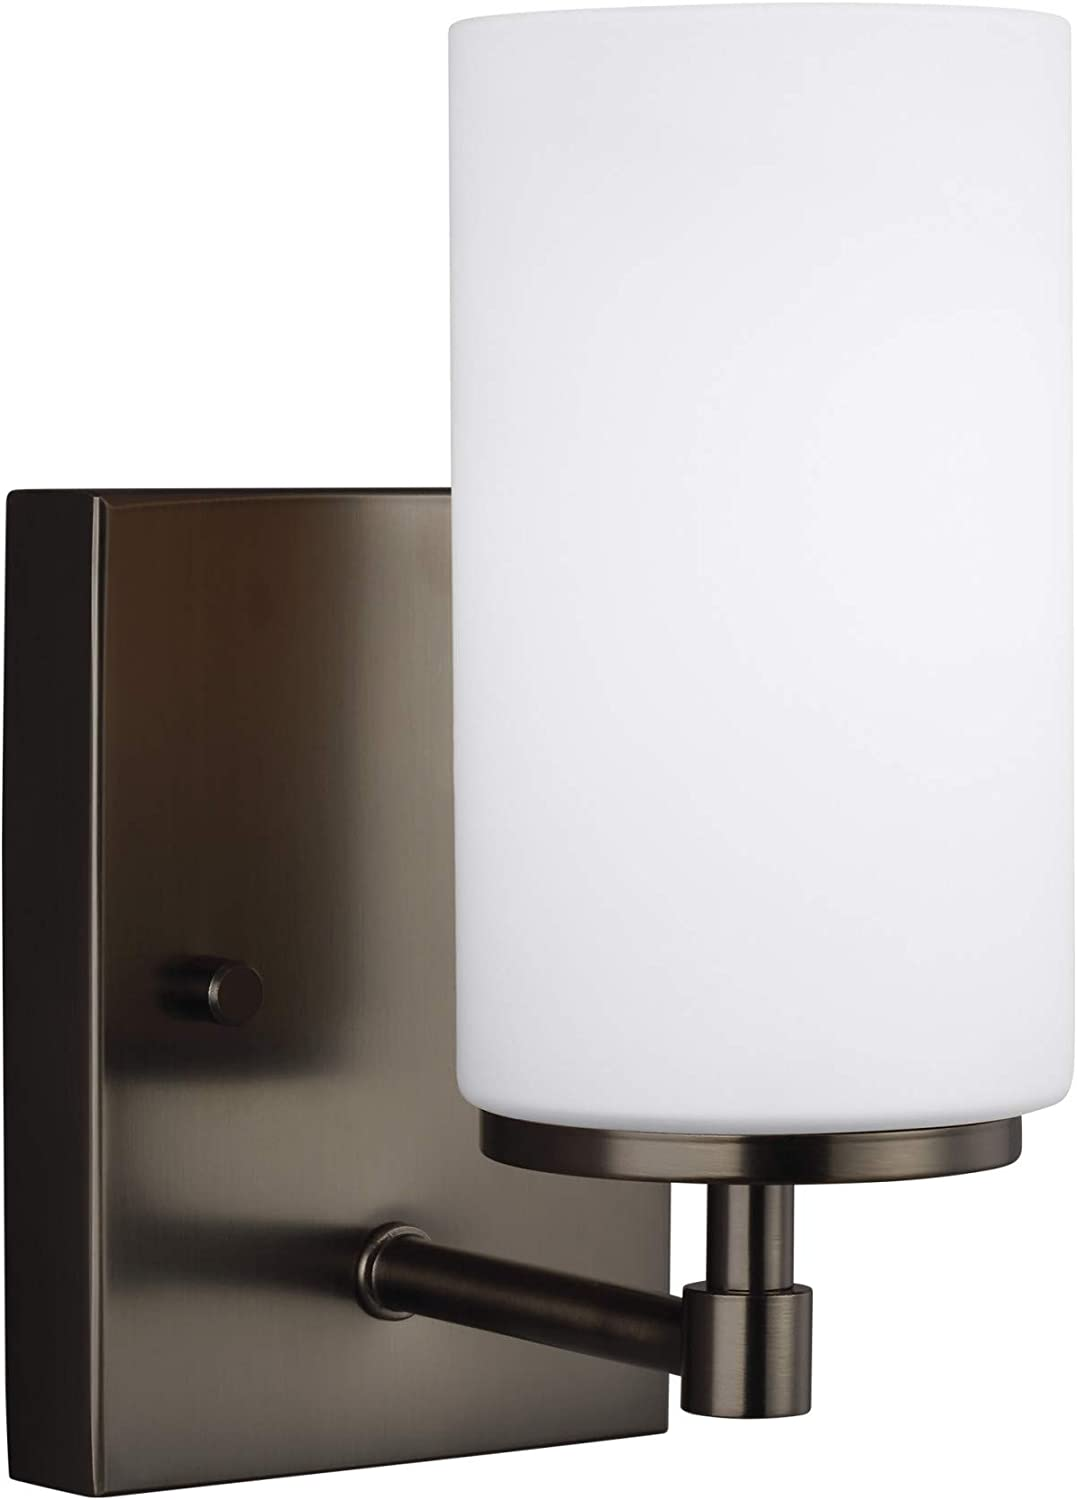 Sea Gull Lighting 4124601-778 Alturas One Light Wall Sconce Brushed Oil Rubbed Bronze Finish with Etched//White Glass